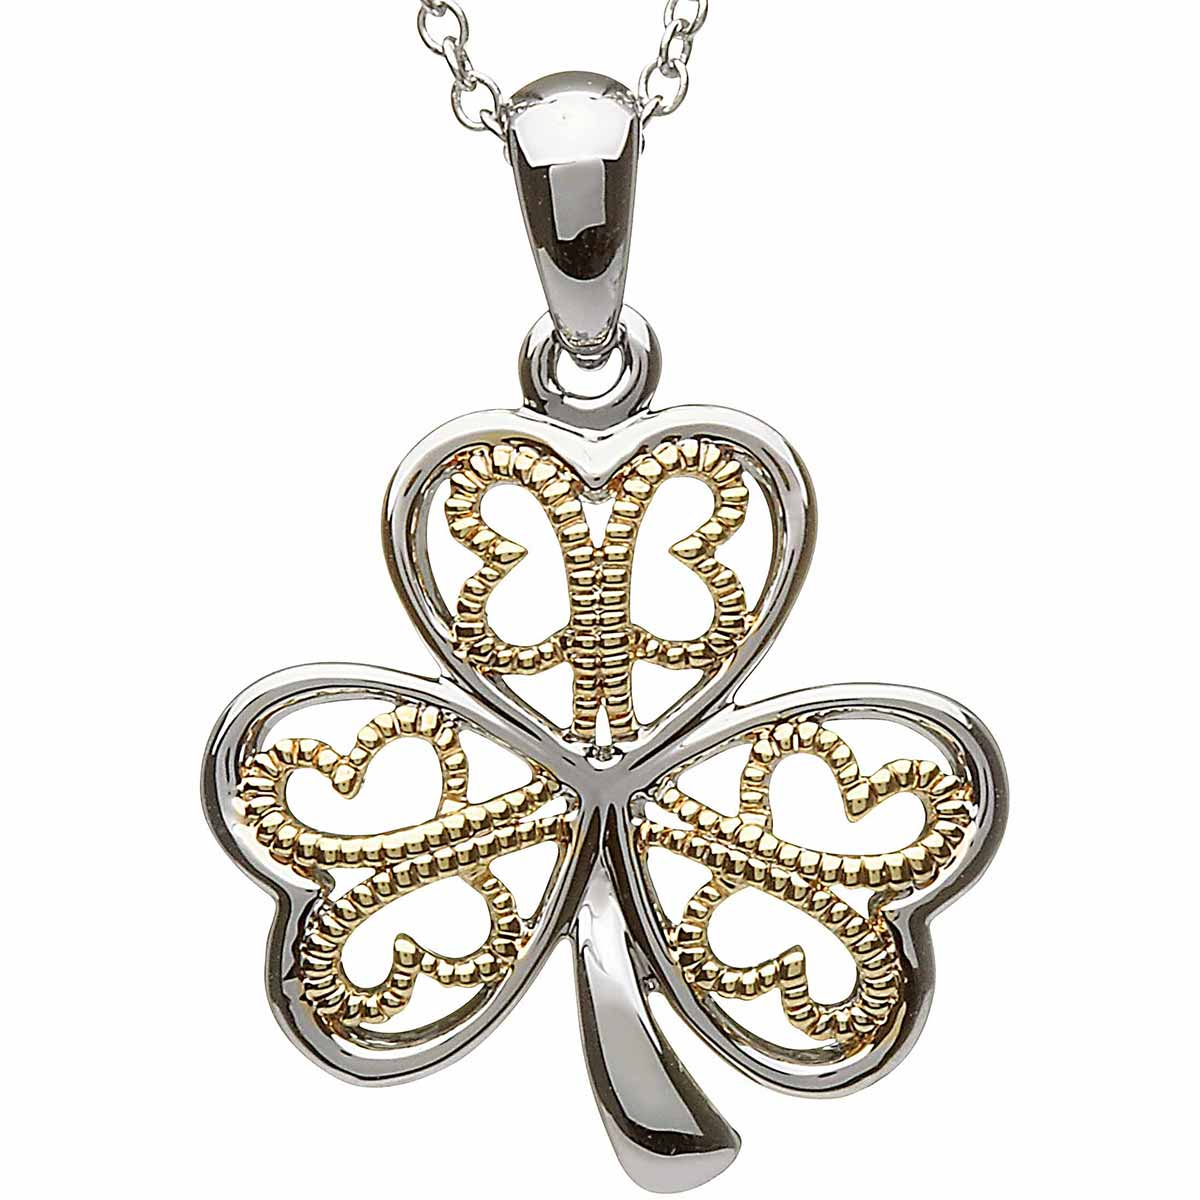 Shamrock Pendant - Sterling Silver Filigree Shamrock Pendant with Chain